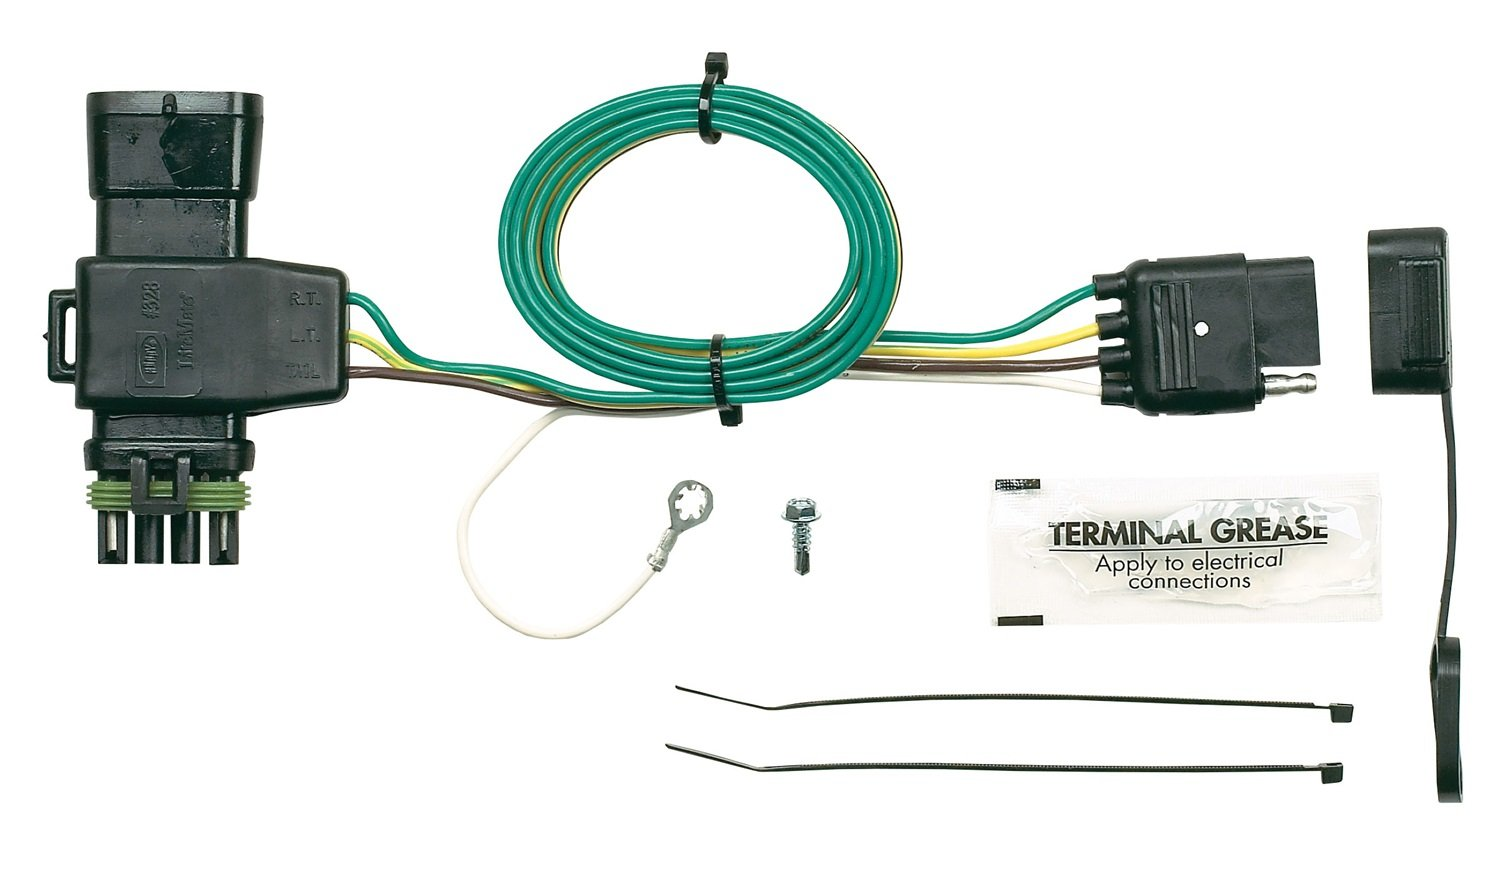 1994 Toyota Pickup Trailer Wiring Harness House Diagram 1989 Electricity Basics Rh Casamagdalena Us Connectors